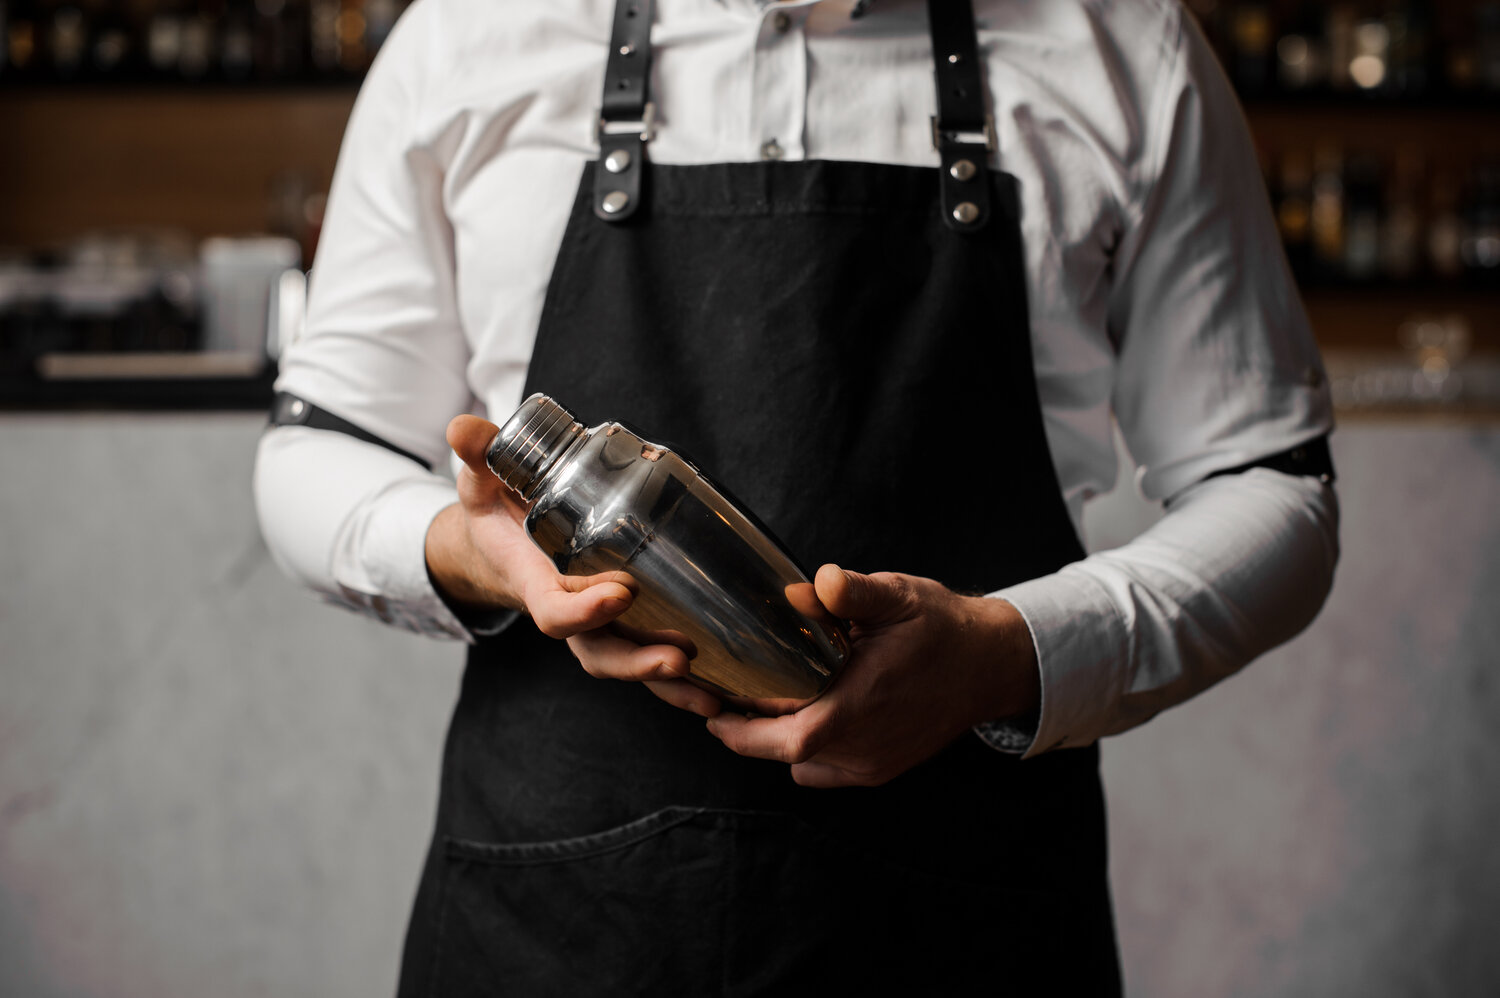 Barmans hands holding a shaker against the bar counter